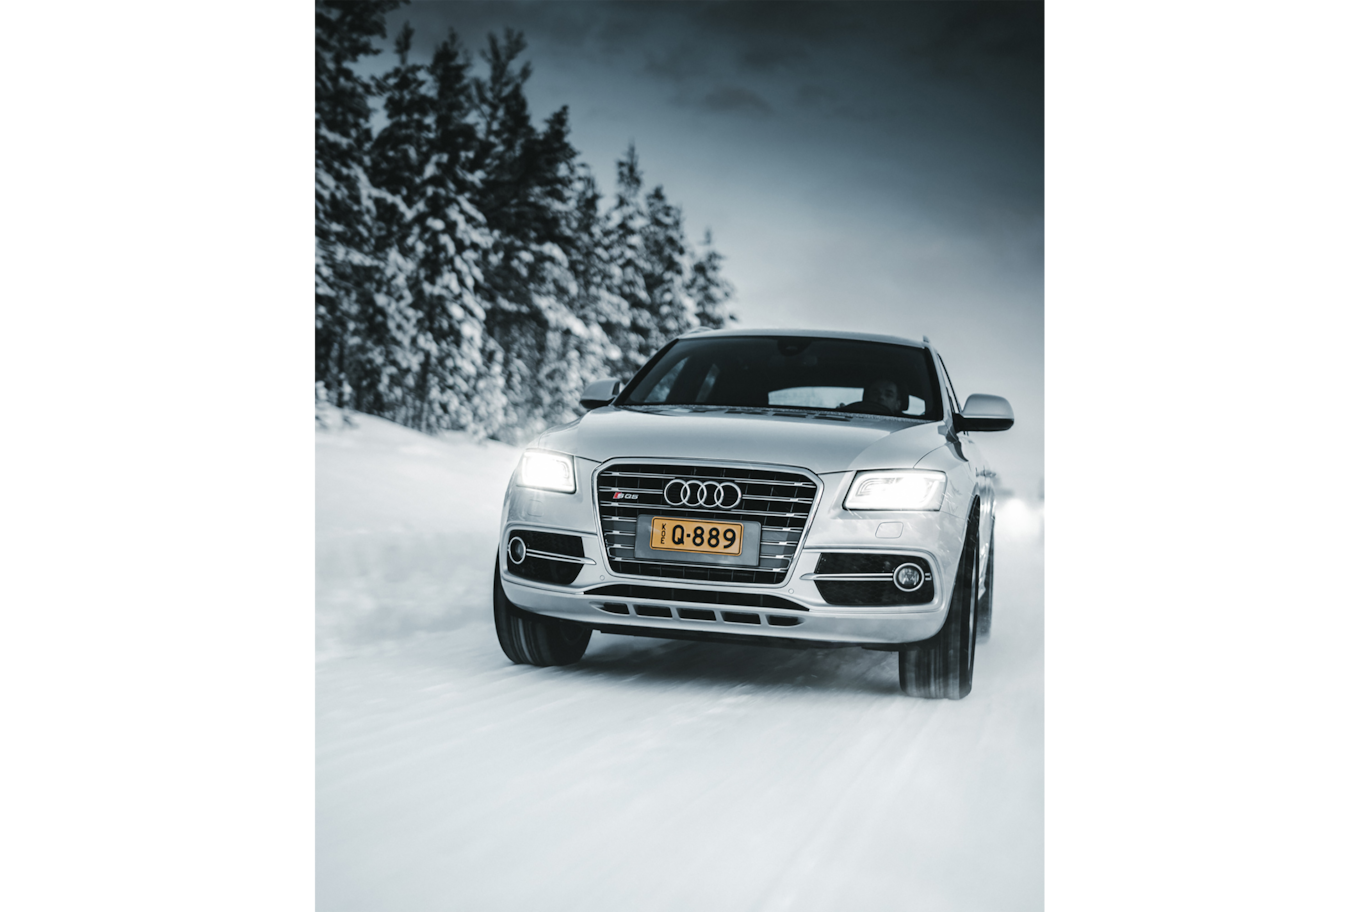 jack harding sony alpha 7r4 silver car riding on a snowy road